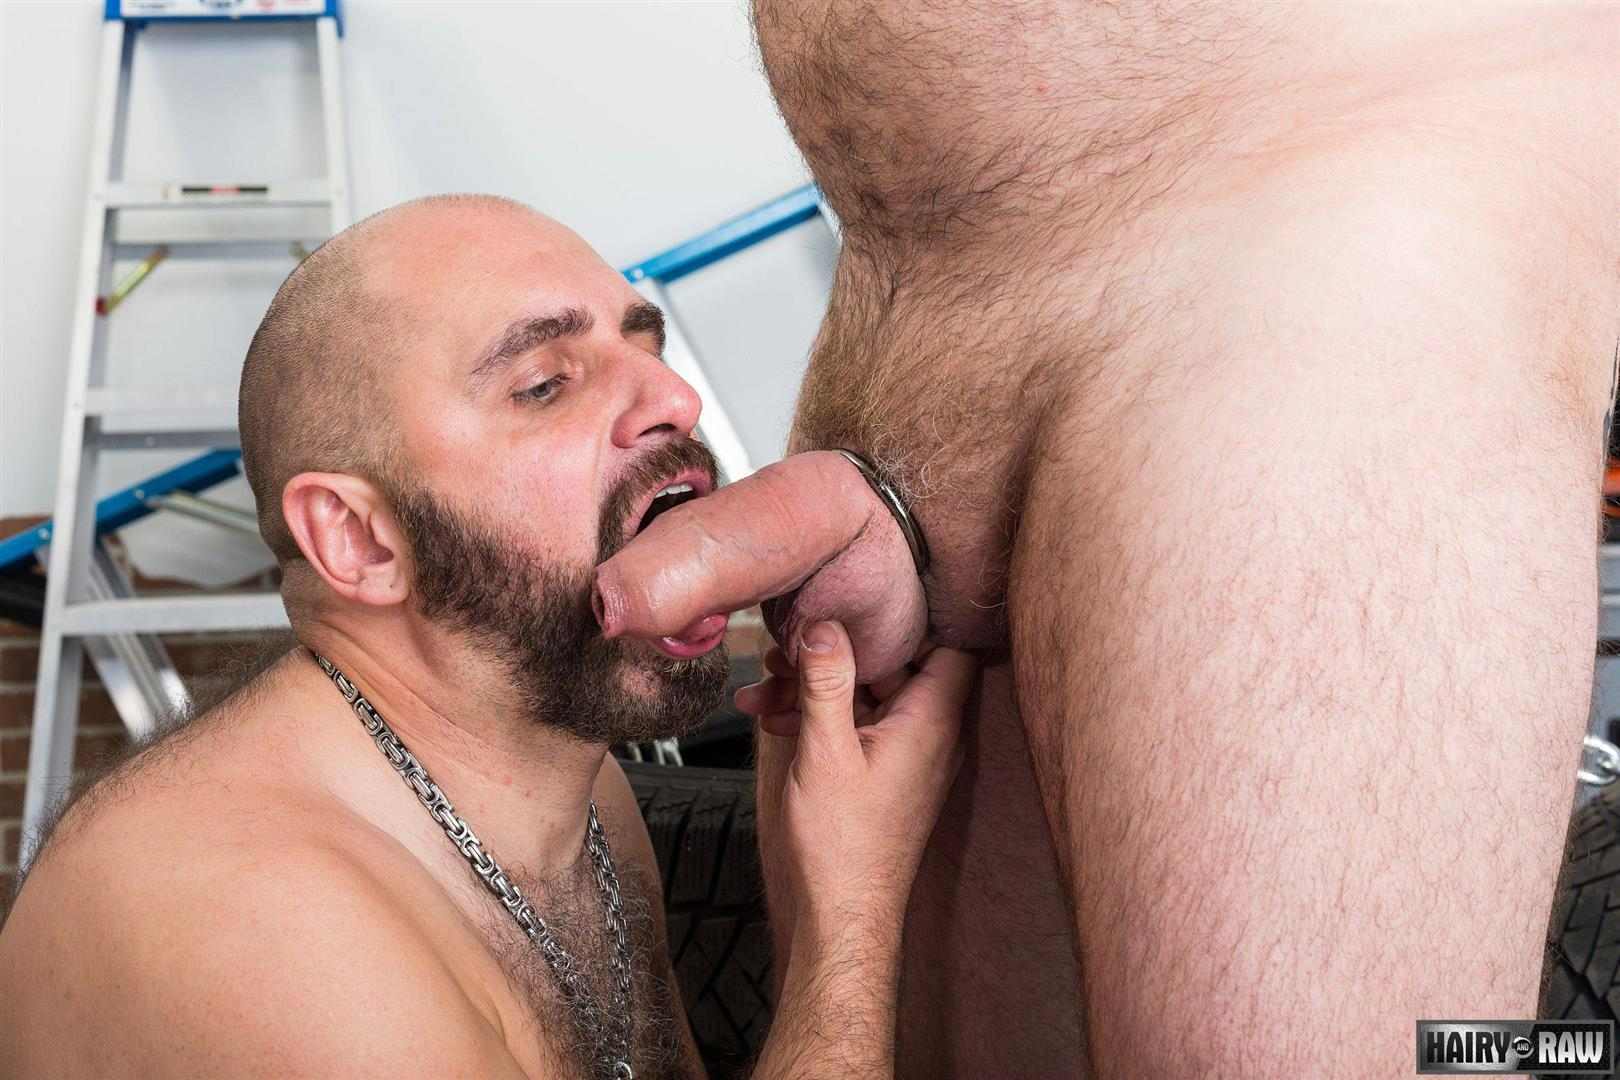 Hairy and Raw Vince Stewart and Martin Pe Hairy Chubby Dads Barebacking Uncut Cocks Amateur Gay Porn 08 Hairy Chubby Dads With Thick Uncut Cocks Fucking Bareback